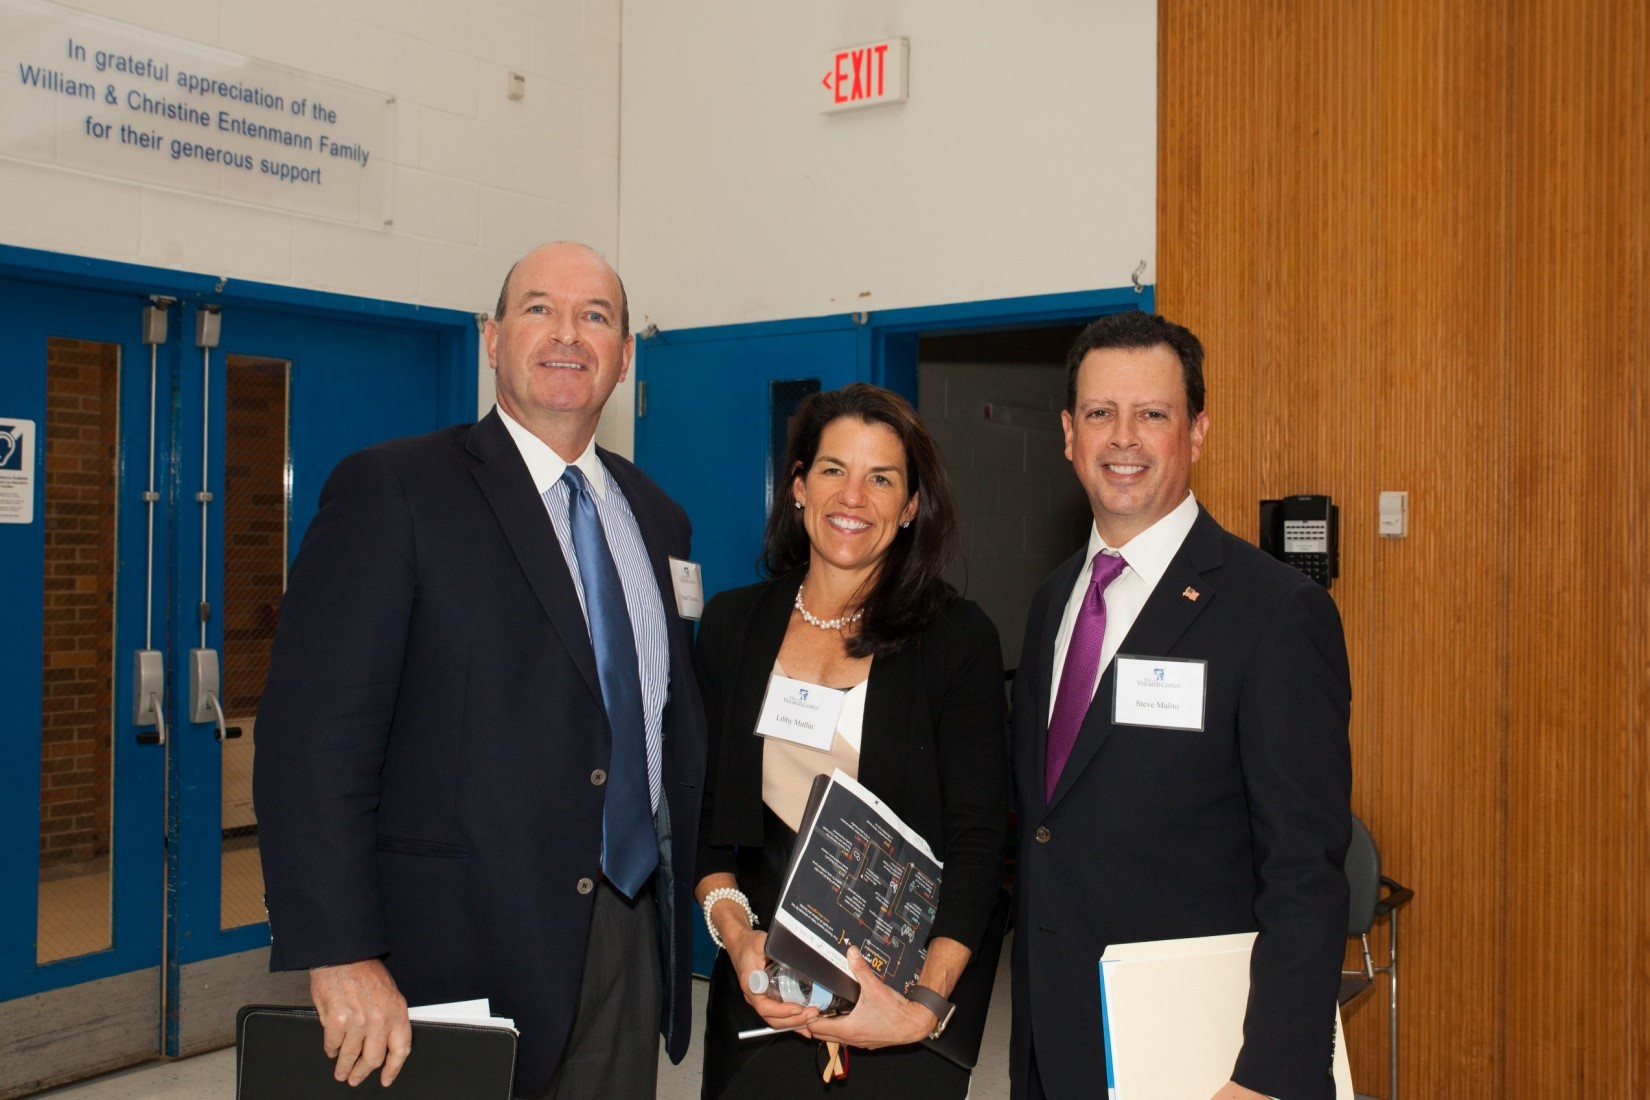 [L-R] Panelists Peter Thomas, Principal, Powers Law Firm, with Libby Mullin, President, Mullin Strategies and Steve Malito, Esq., Davidoff Hutcher & Citron LLP gather at the Project Accessible Oral Health event for a panel on Public Policy Trends, Past, Present & Future.